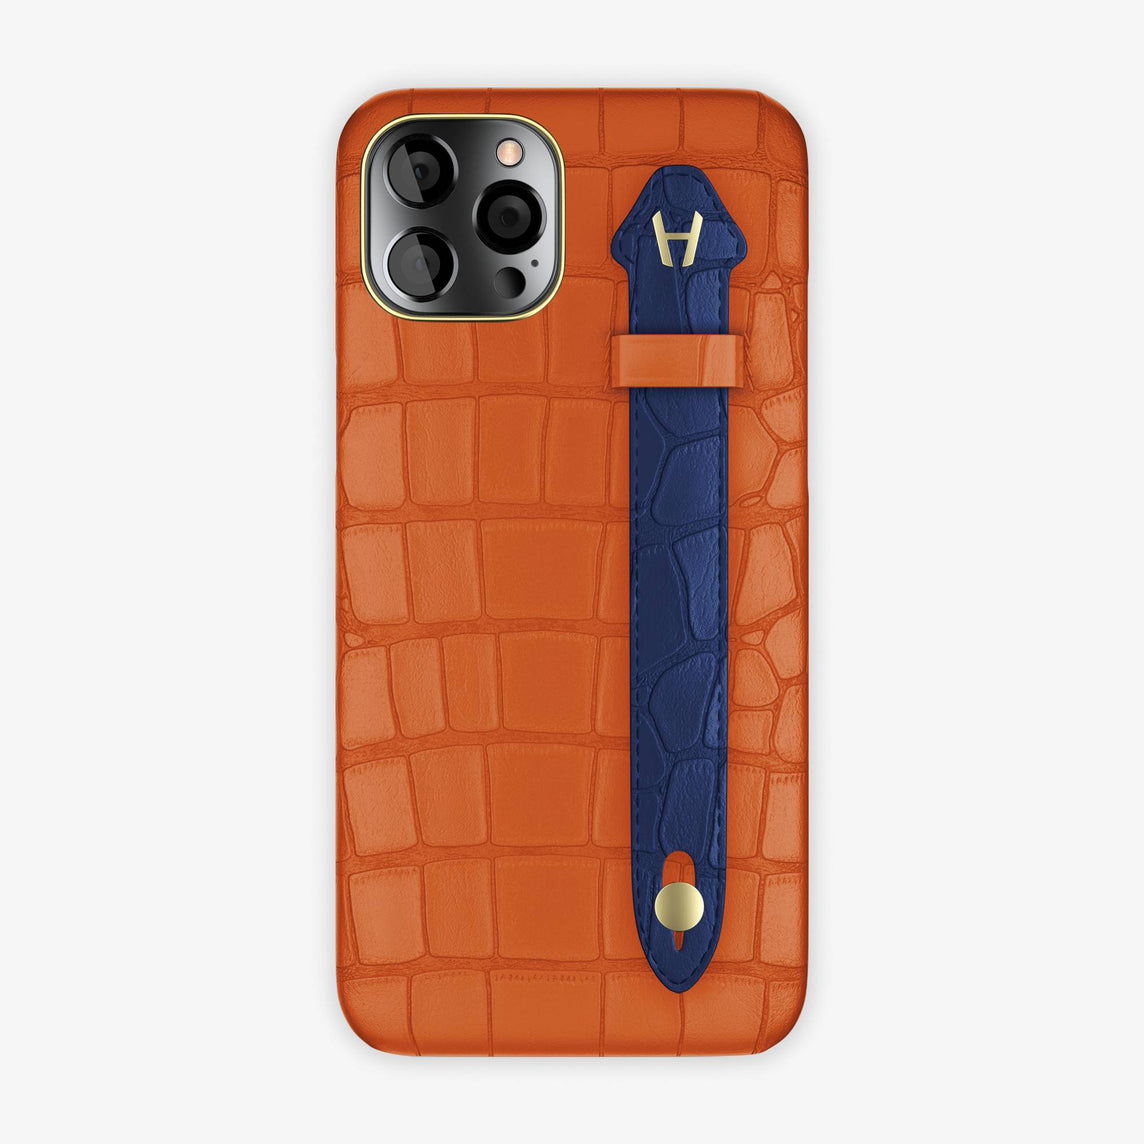 Alligator Side Finger Case iPhone 12 Pro Max | Orange Sunset/Navy Blue - Yellow-Gold